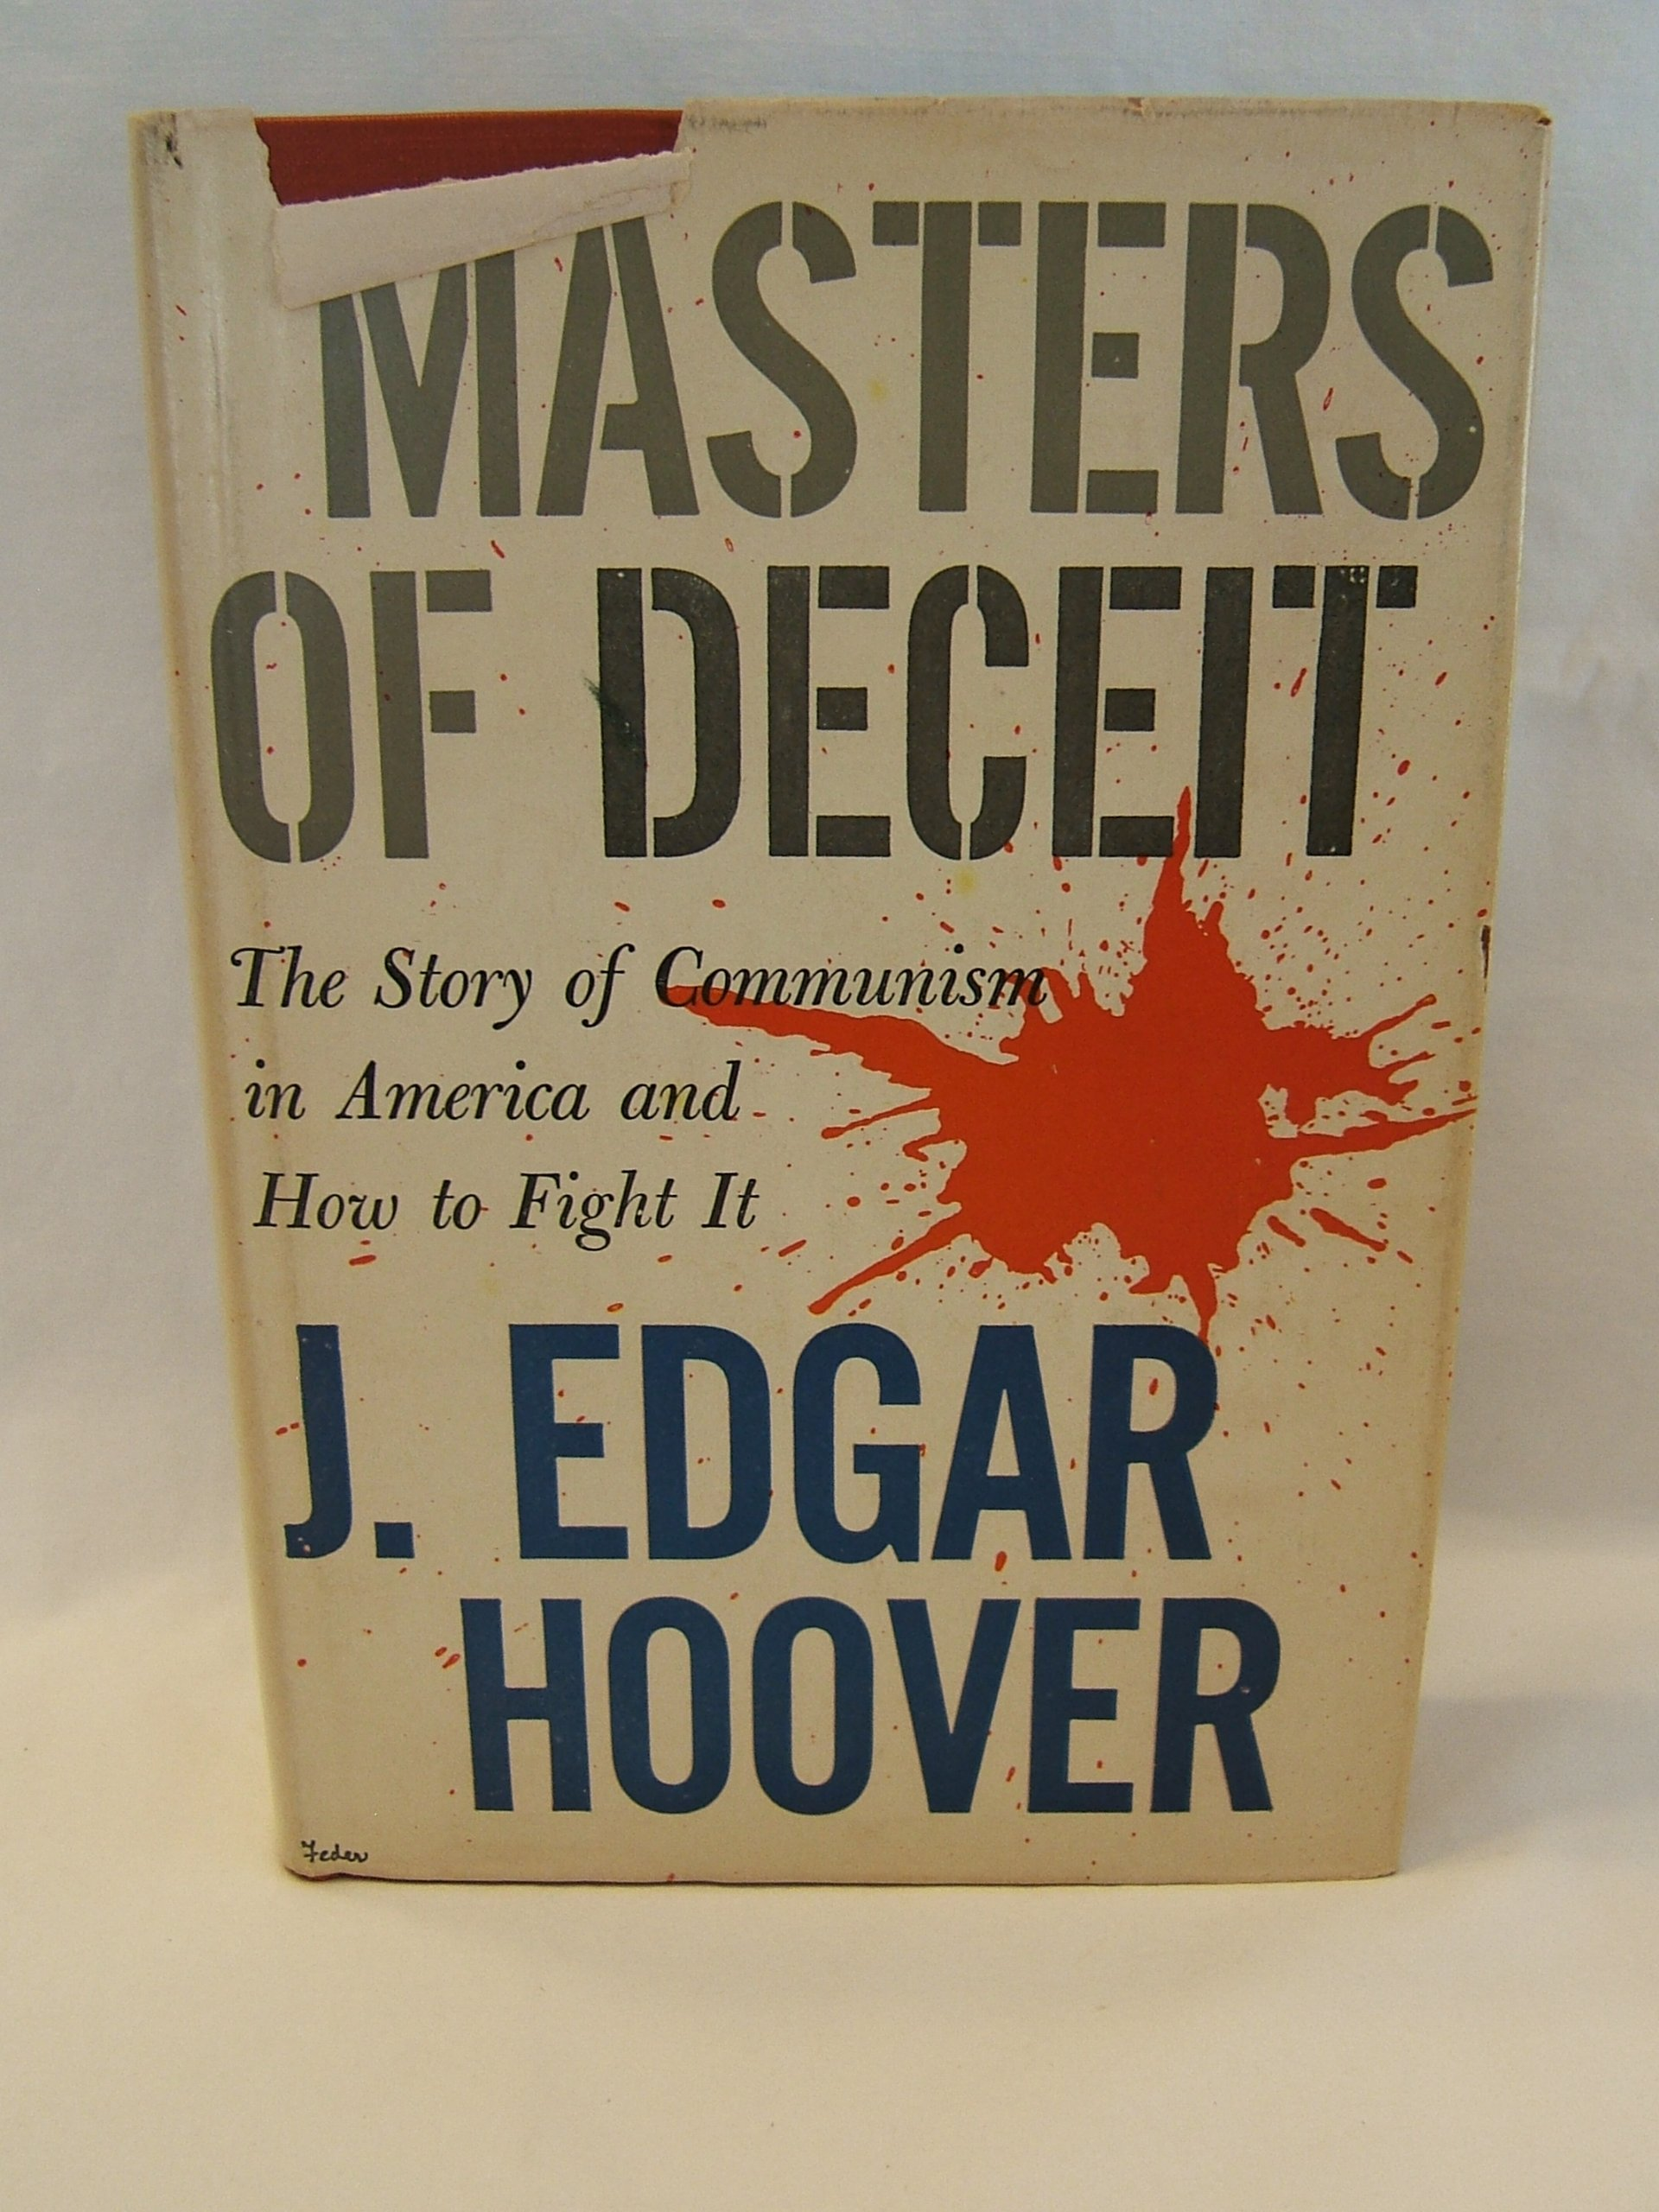 MASTERS OF DECEIT: The Story of Communism in America and How to Fight It.